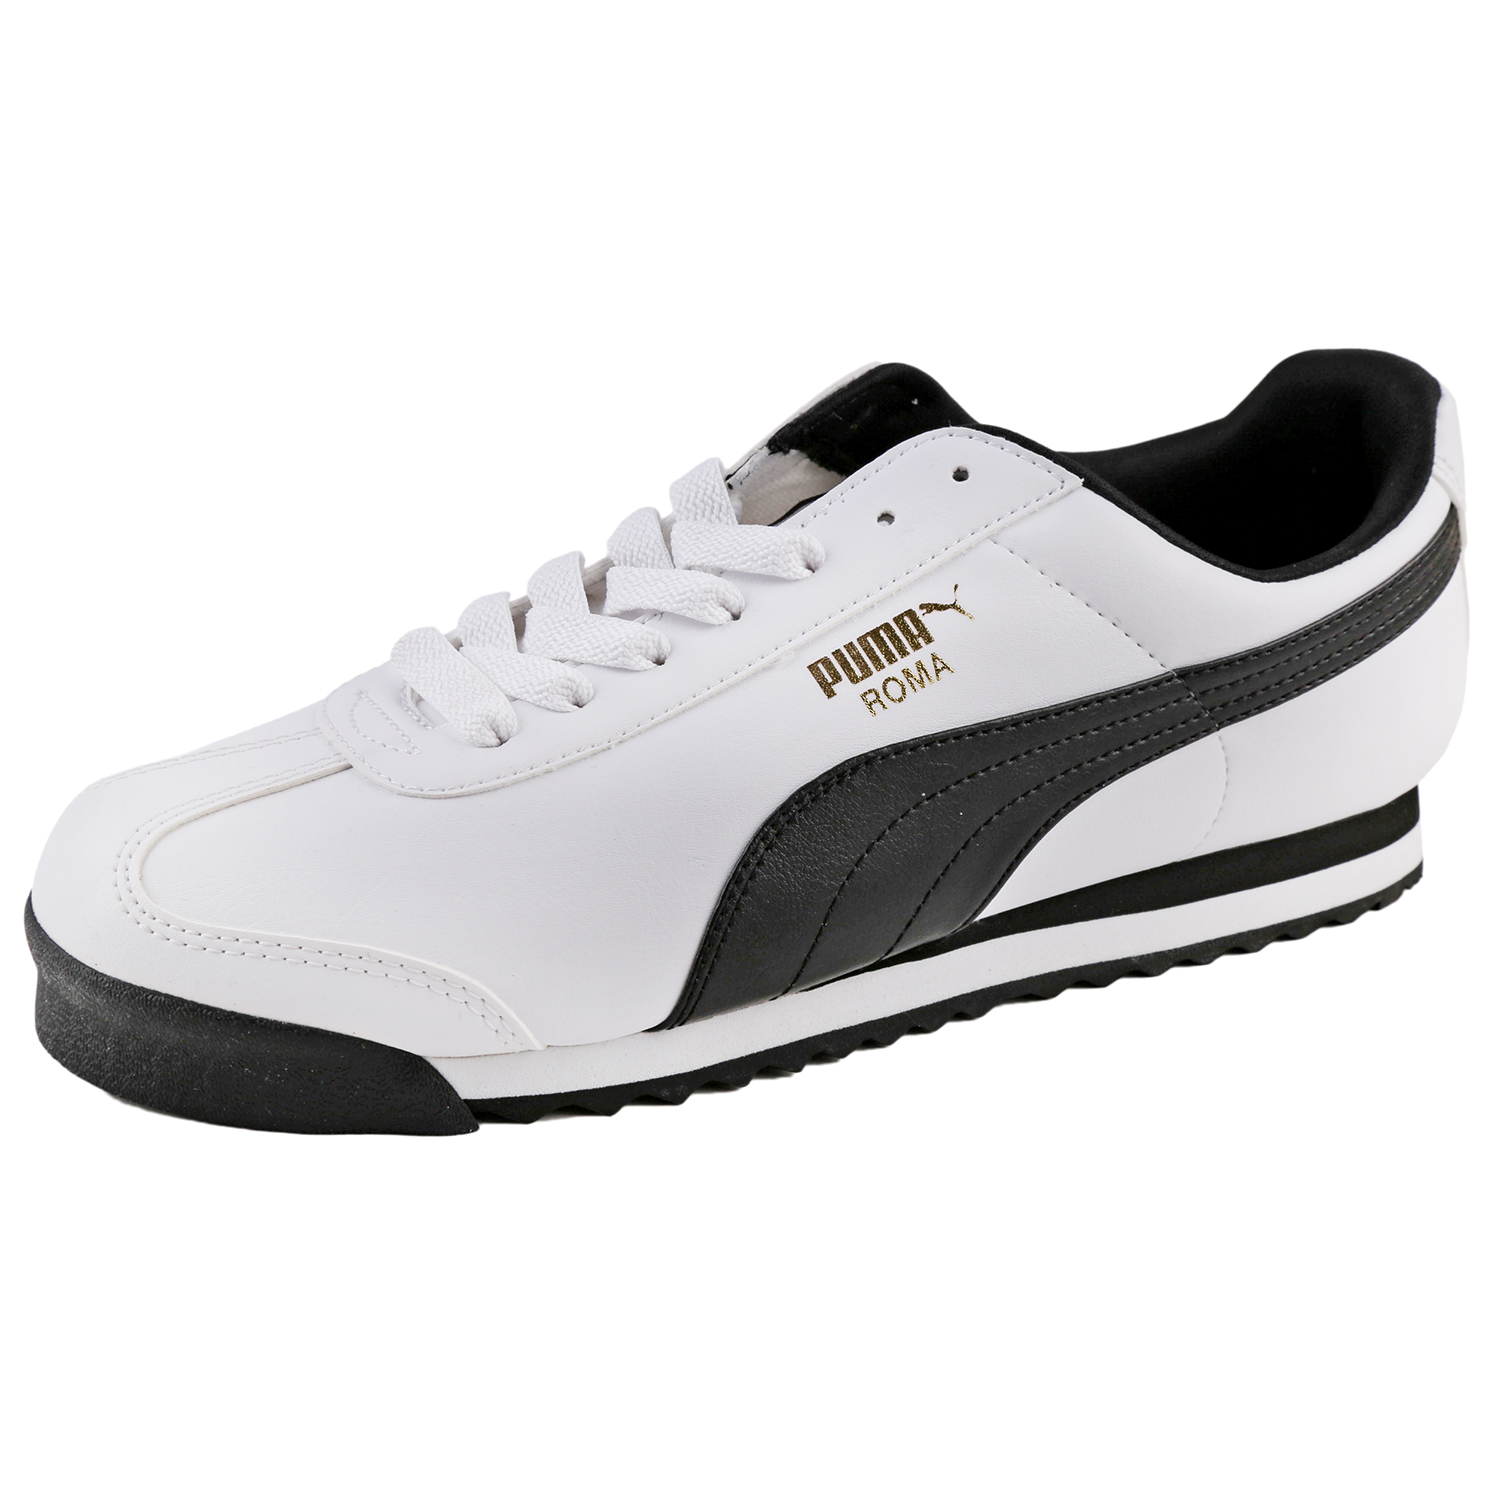 Details about Puma Men s Roma Basic Leather Sneaker Shoes 353572 White Black d073ecf5d